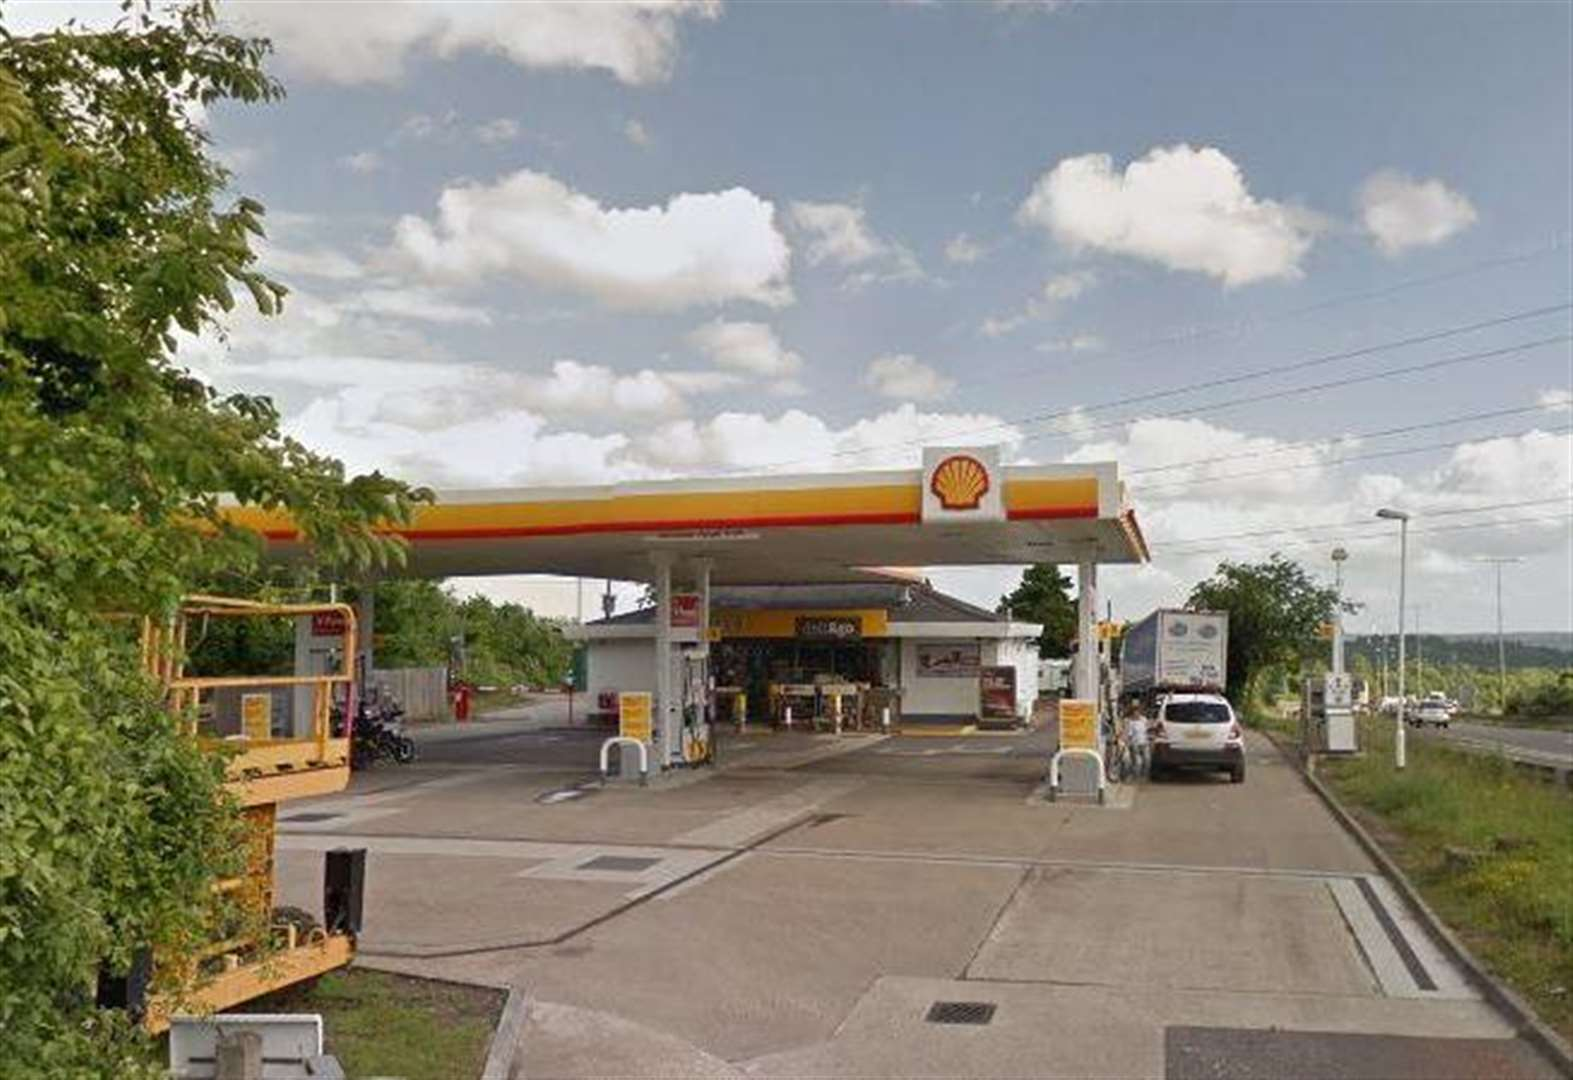 Man risked 'enormous destruction' at petrol station